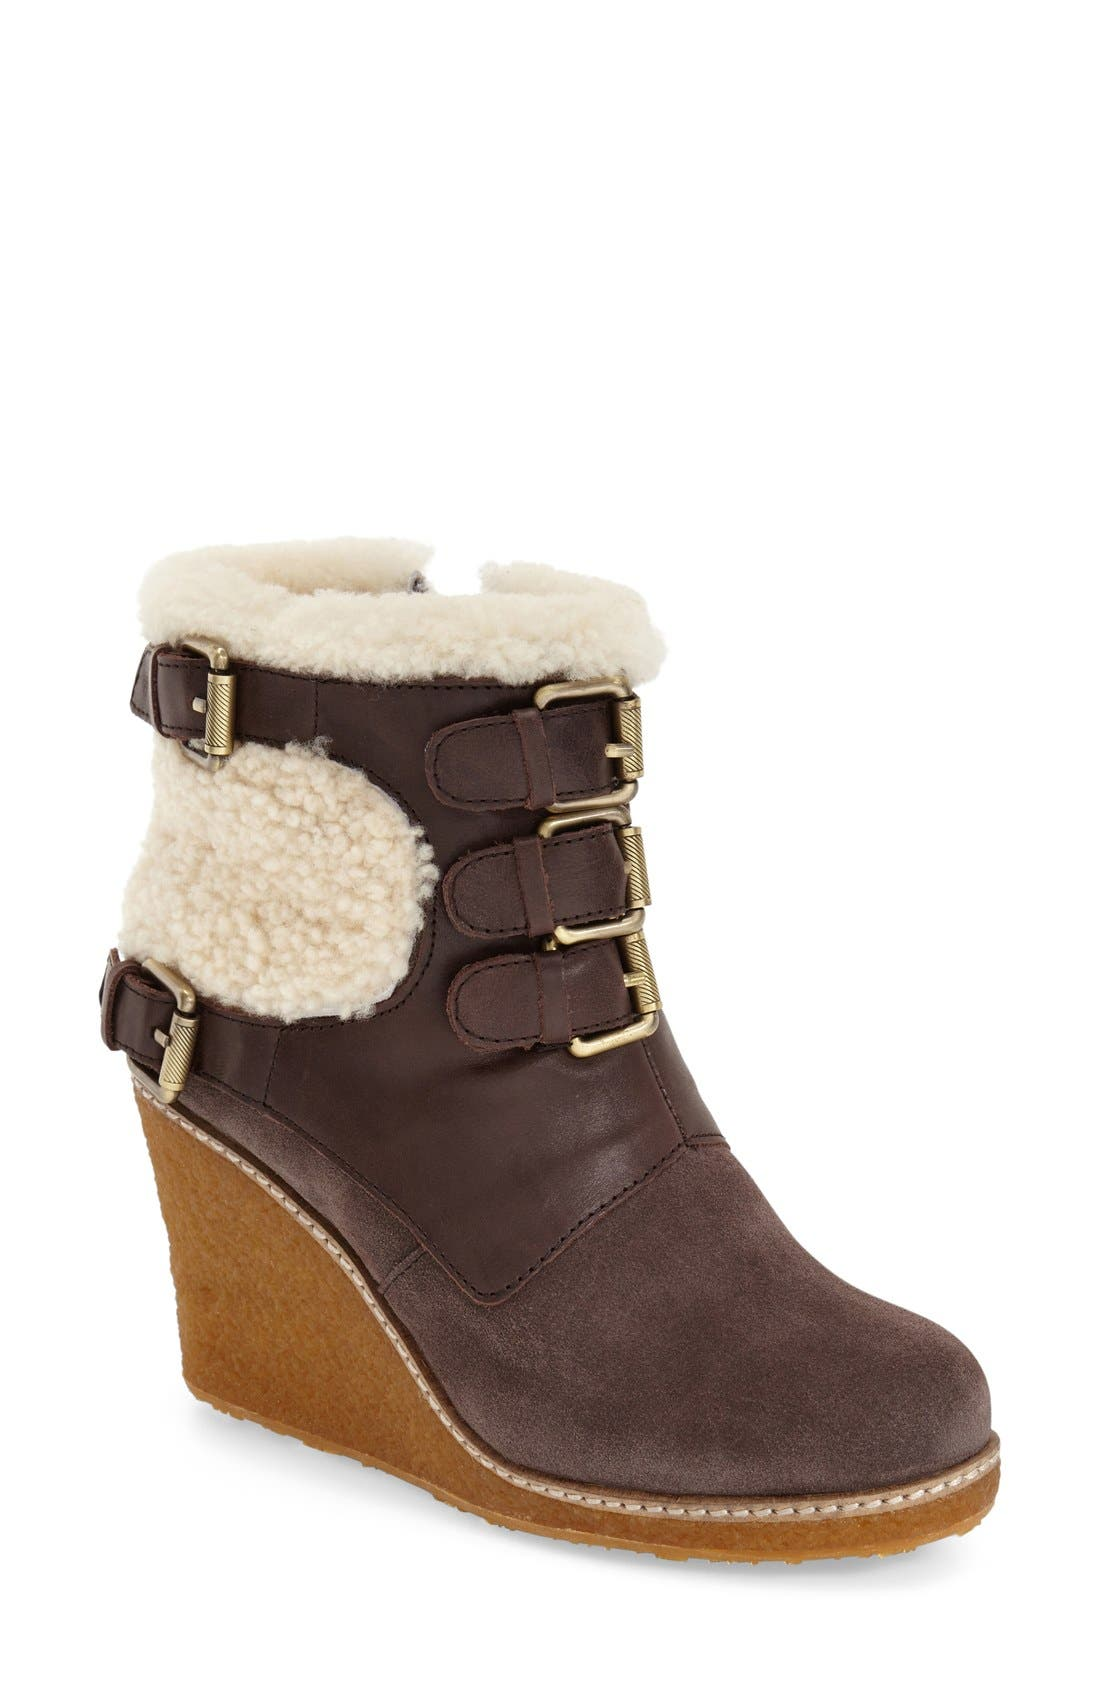 Alternate Image 1 Selected - Australia Luxe Collective 'Monk' Genuine Calf Hair & Shearling Boot (Women)